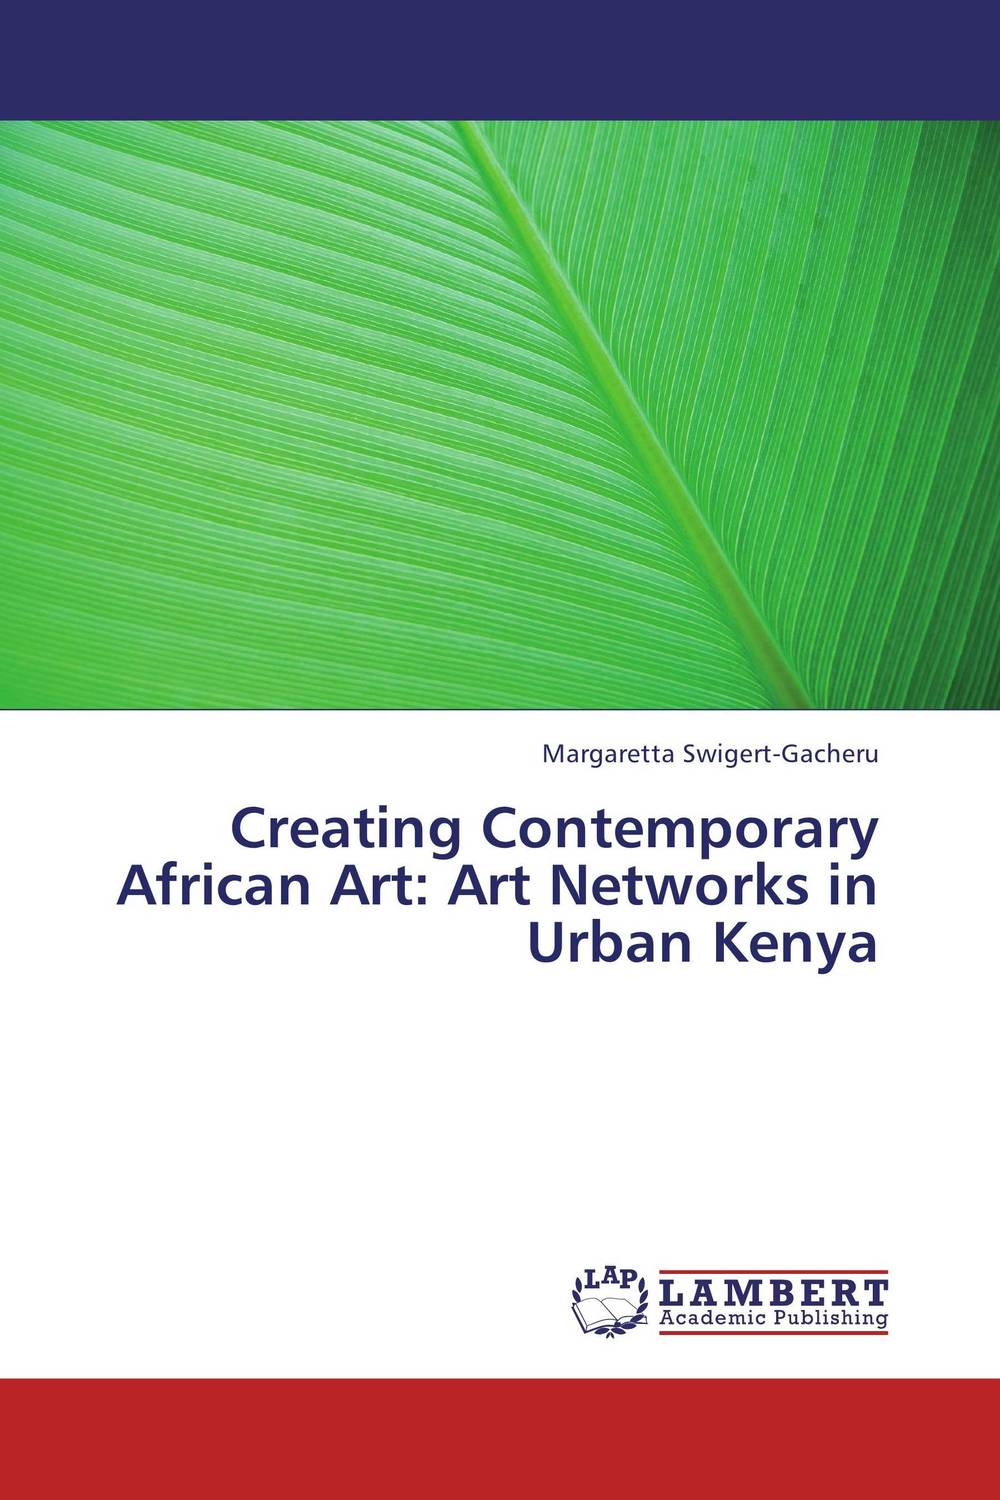 Creating Contemporary African Art: Art Networks in Urban Kenya shoe rack easy assembled plastic multiple layers shoes shelf storage organizer stand holder keep room neat door space saving